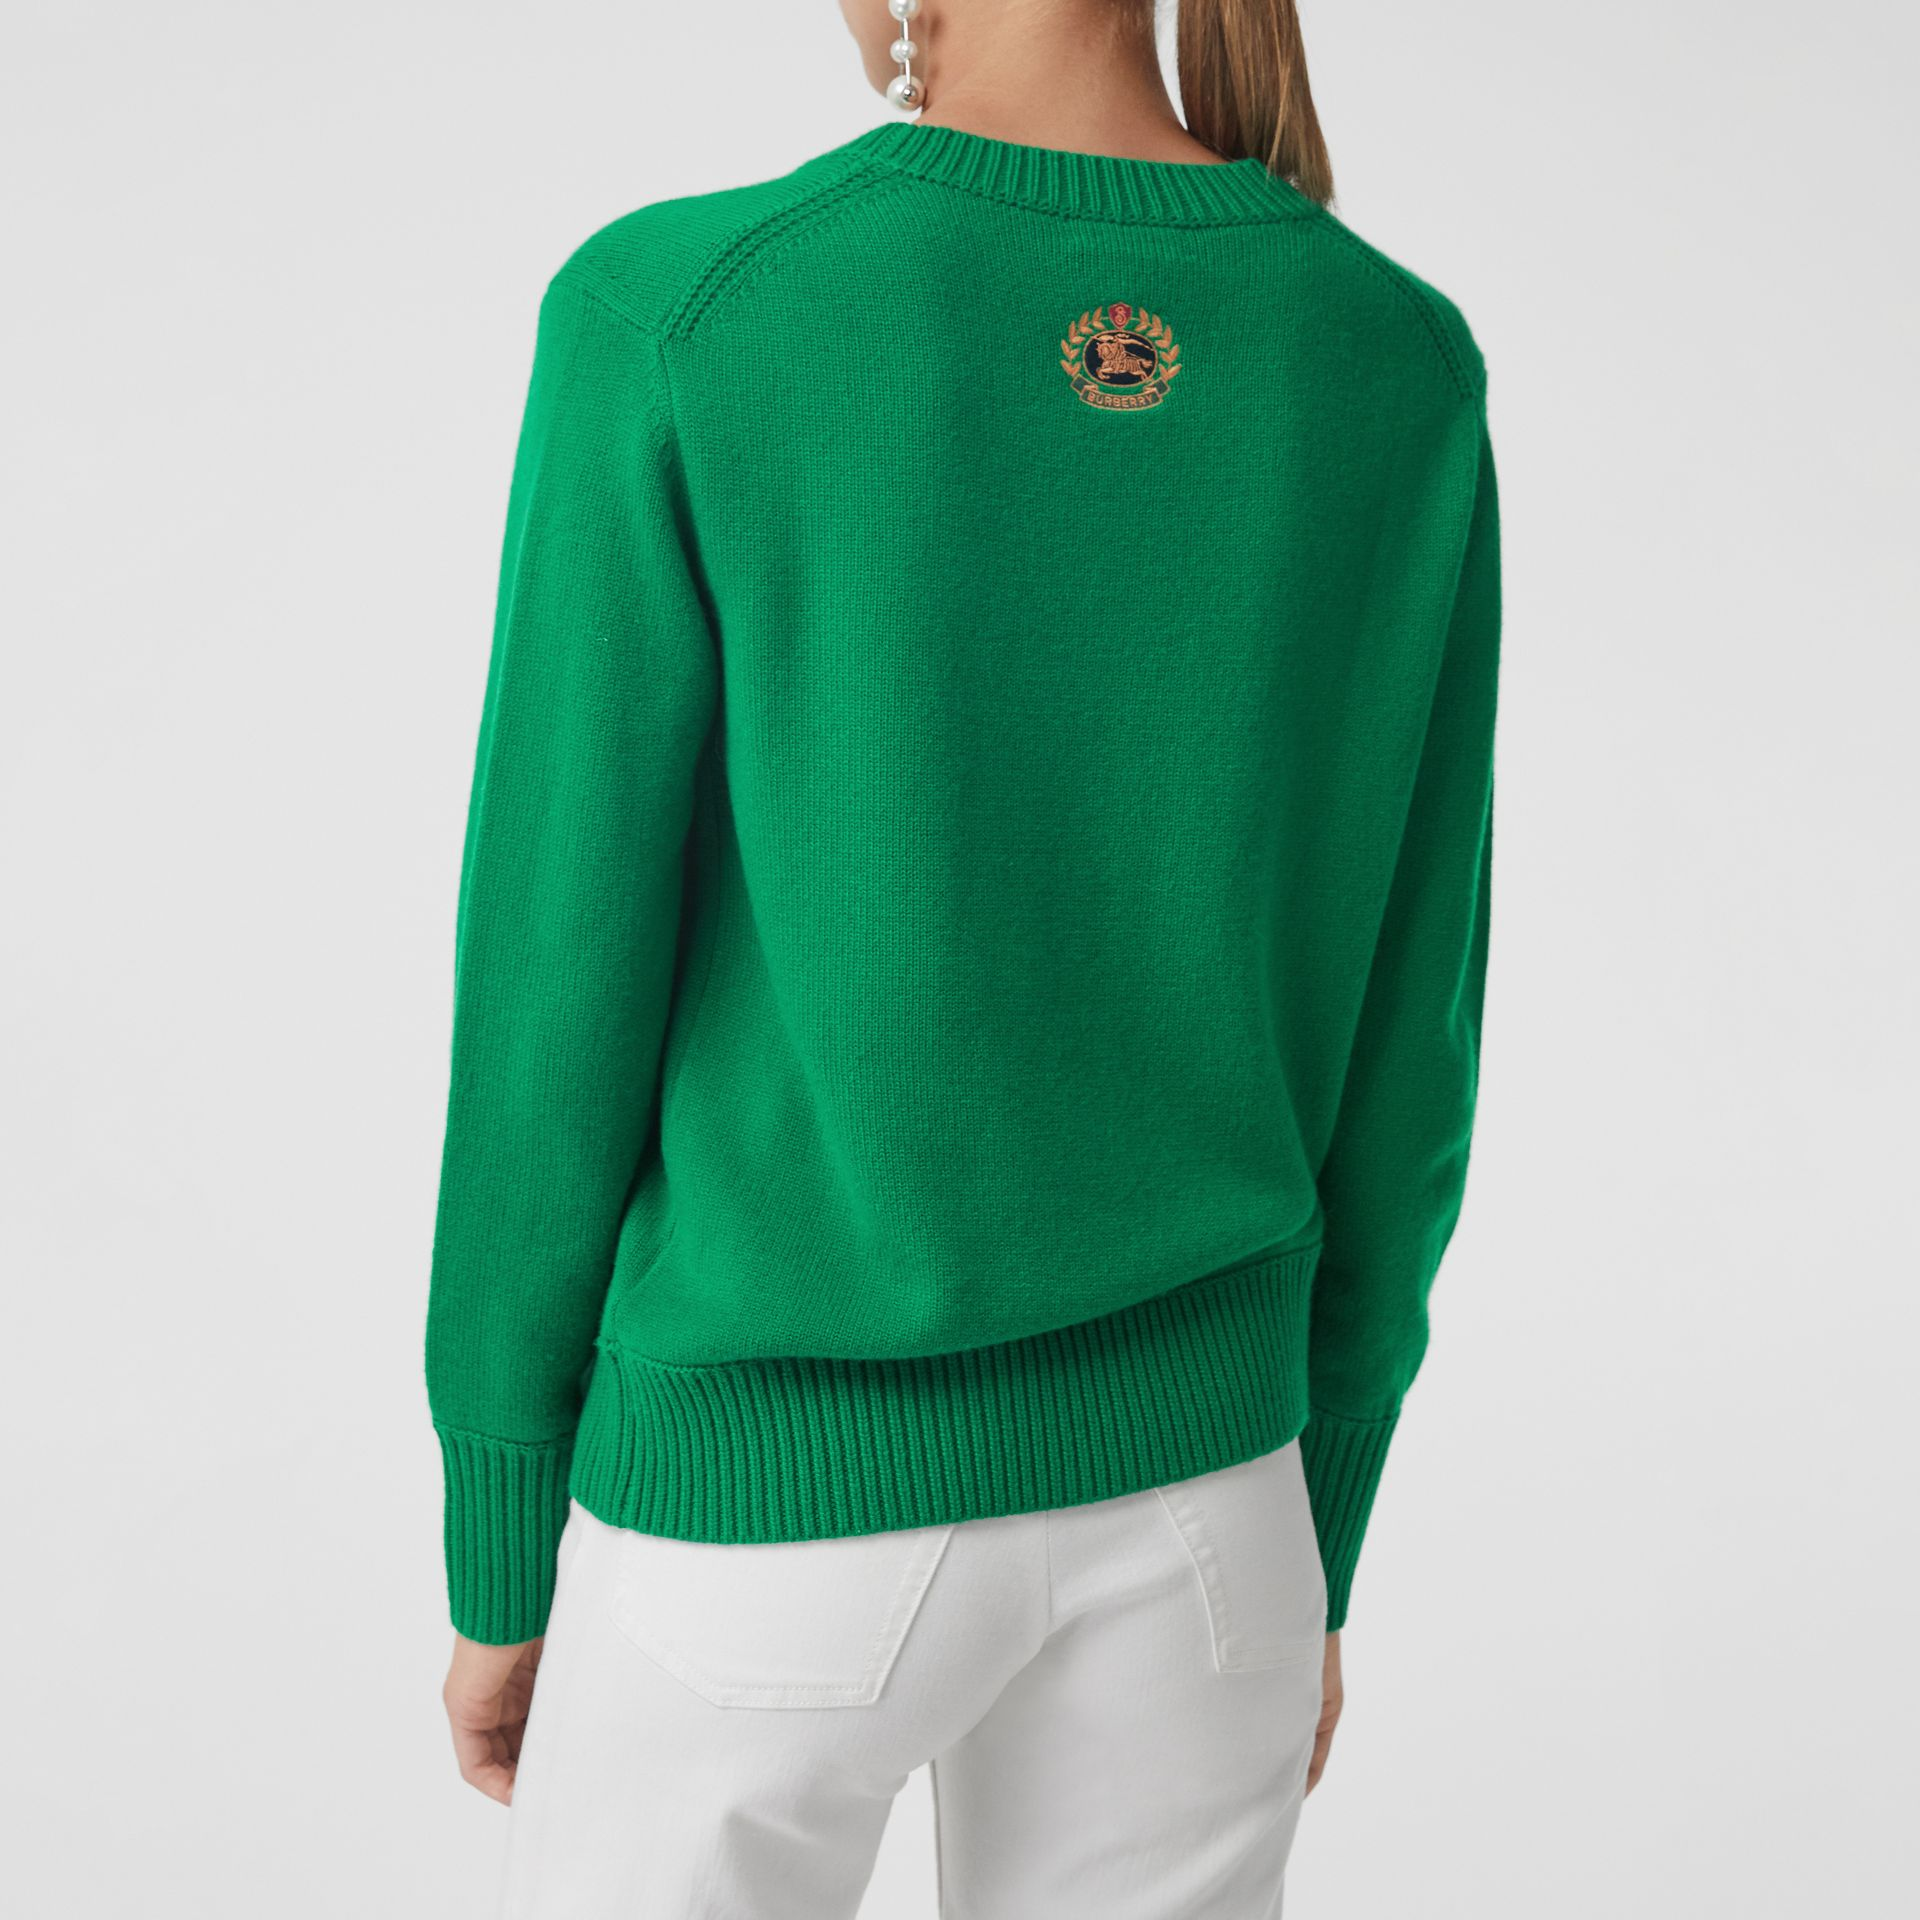 Archive Logo Appliqué Cashmere Sweater in Vibrant Green - Women | Burberry Canada - gallery image 2